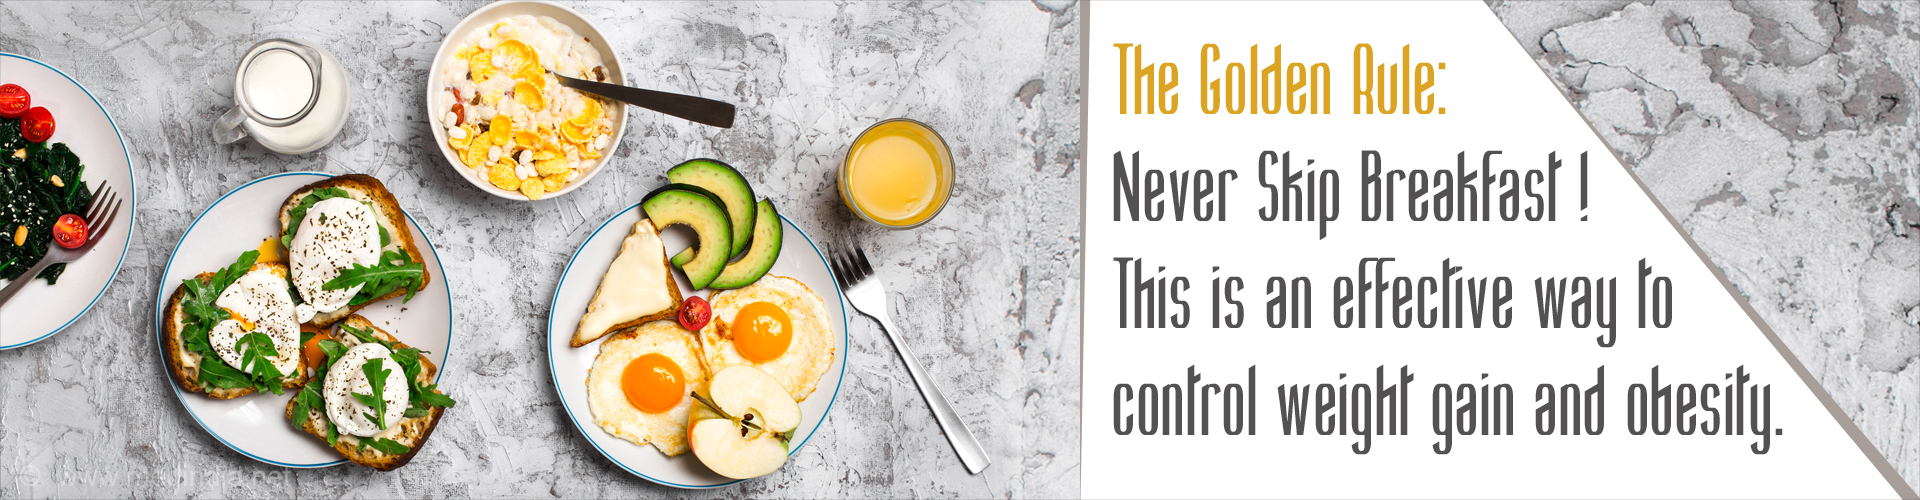 The Golden Rule: Never Skip Breakfast ! This is an effective way to control weight gain and obesity.